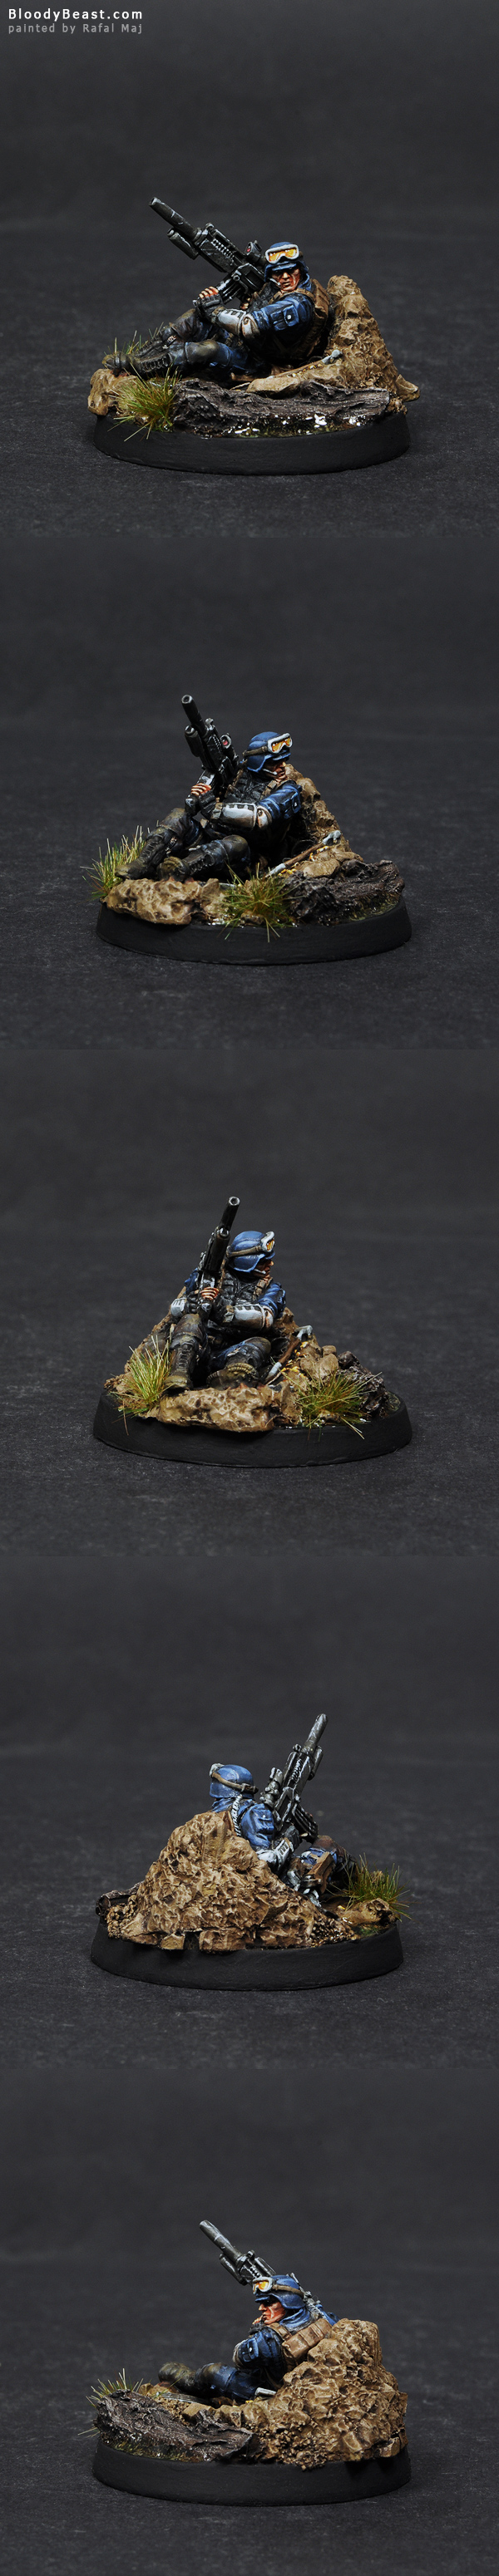 Ariadna Zouaves Sniper painted by Rafal Maj (BloodyBeast.com)